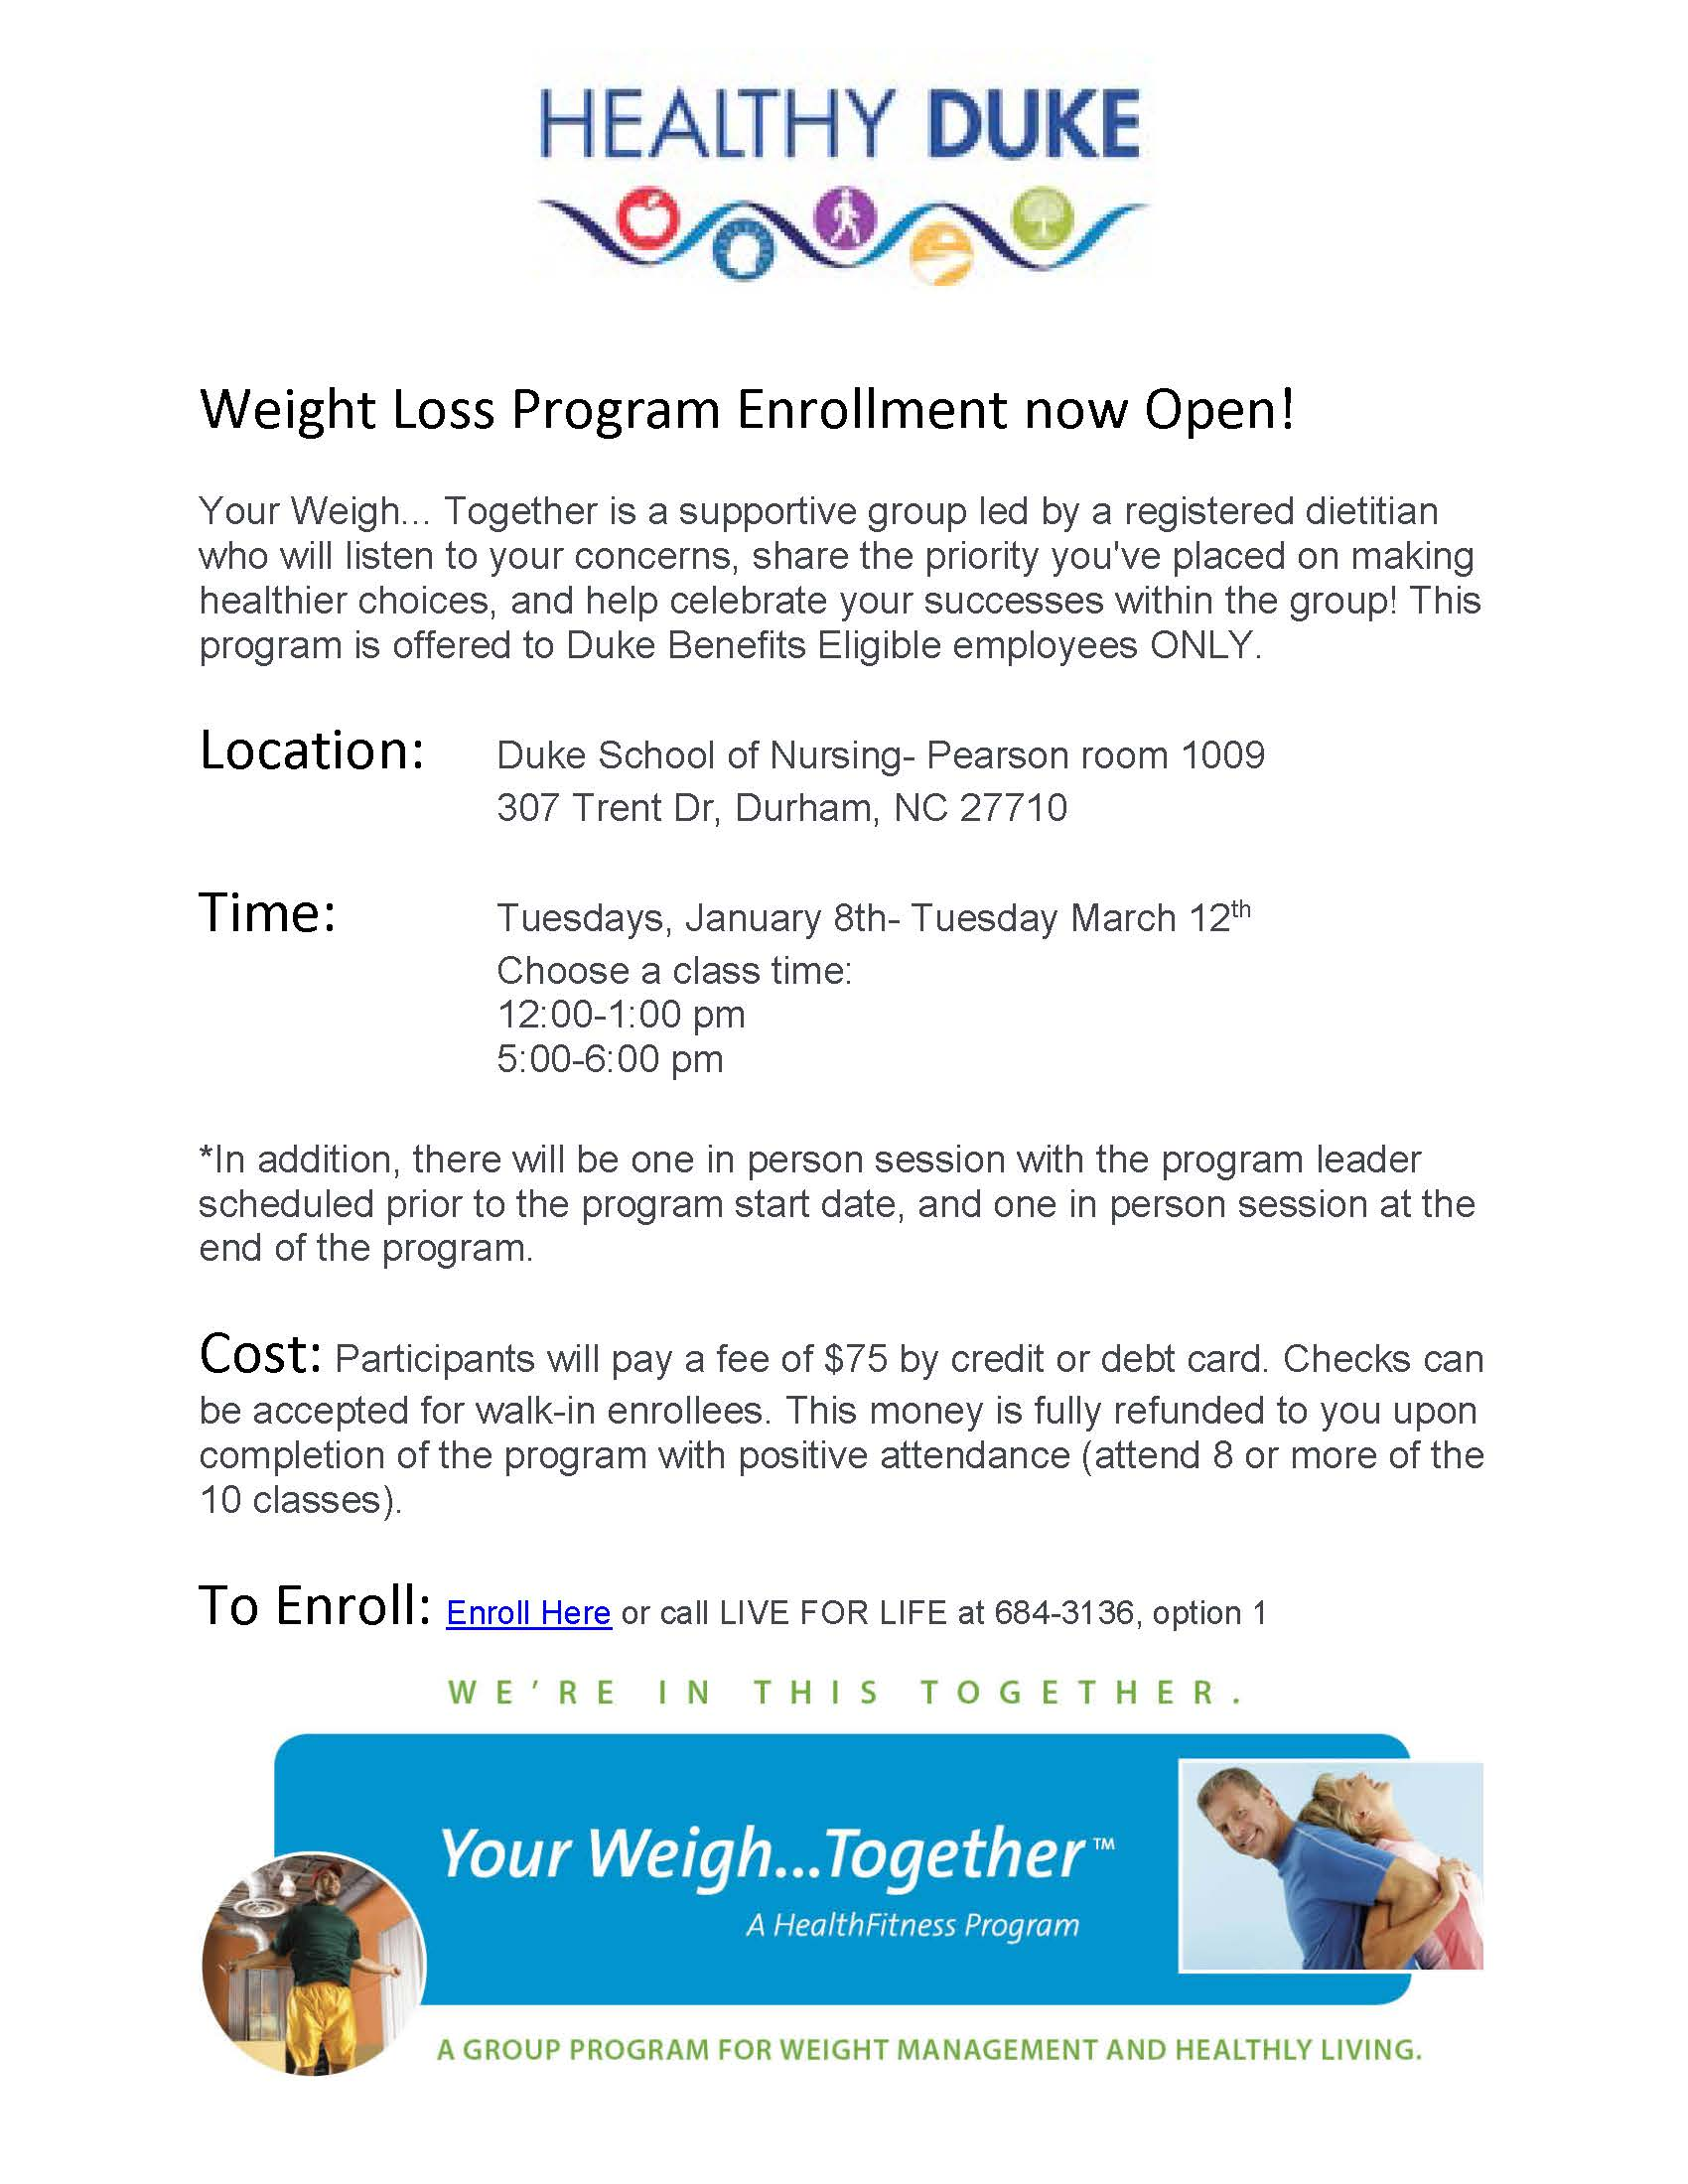 Your Weigh Together Weight Loss Program Enrollment Now Open Duke